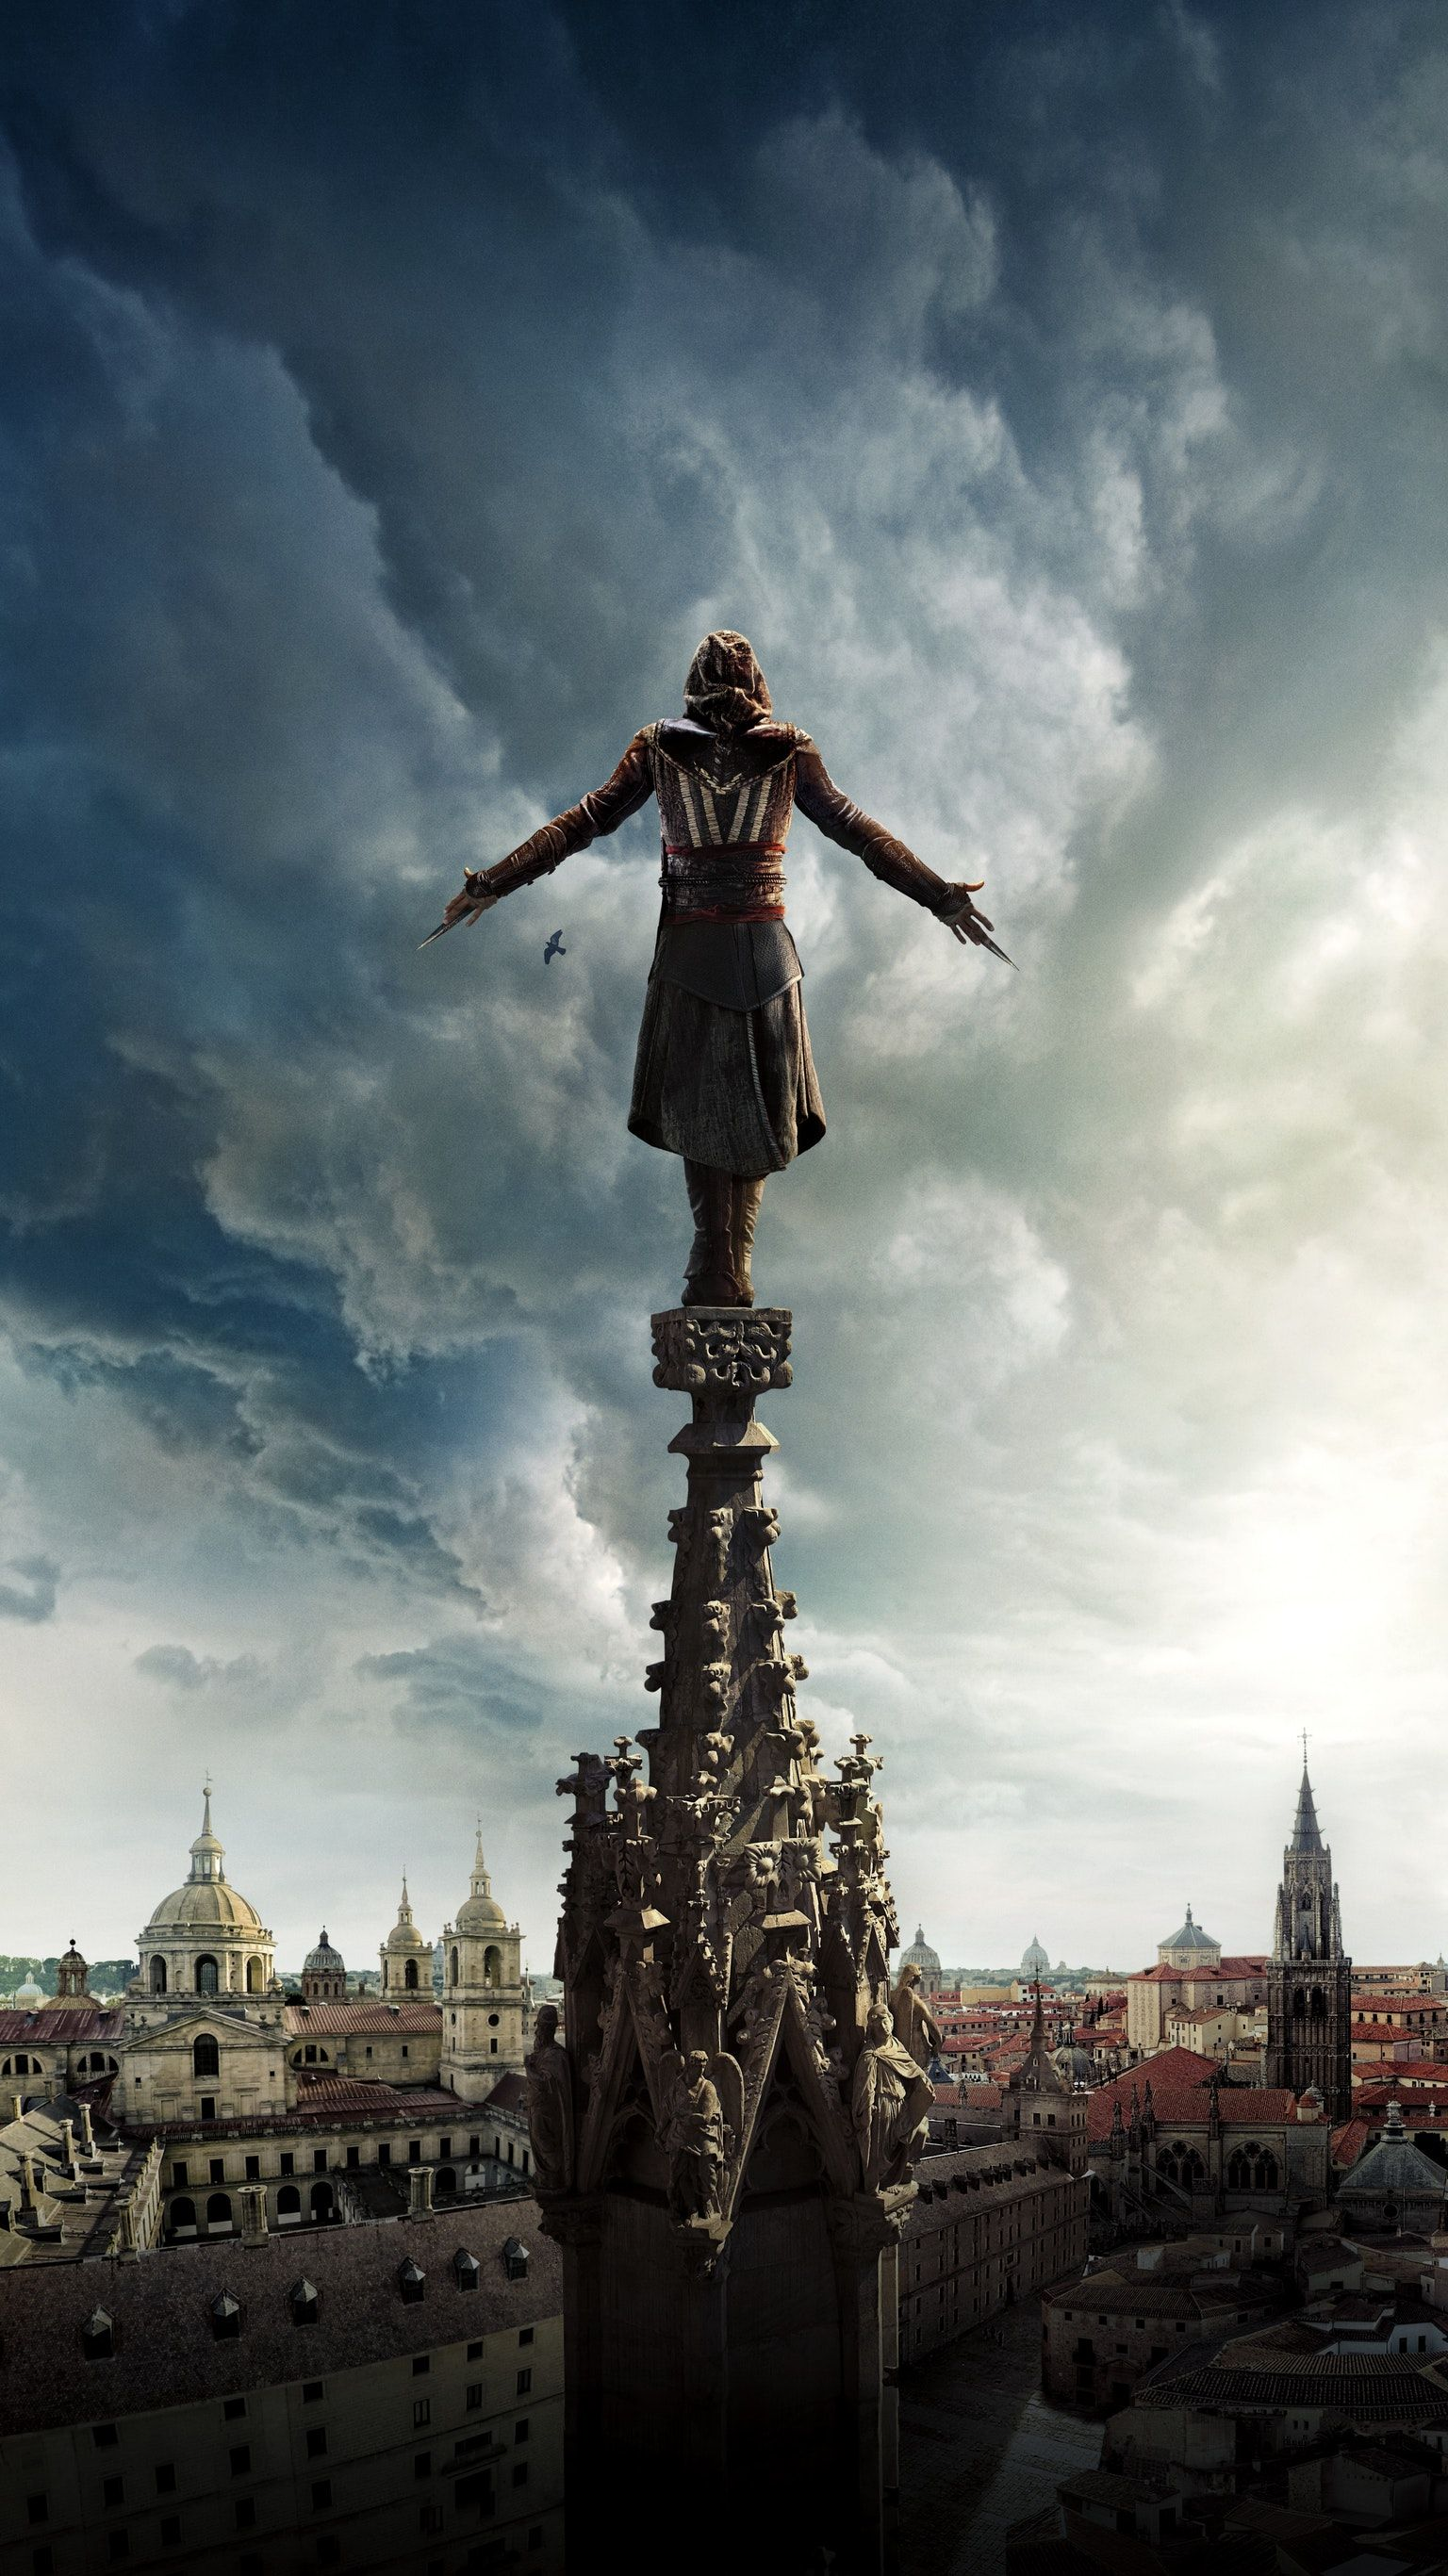 Assassin's Creed (2016) Phone Wallpaper Creed movie